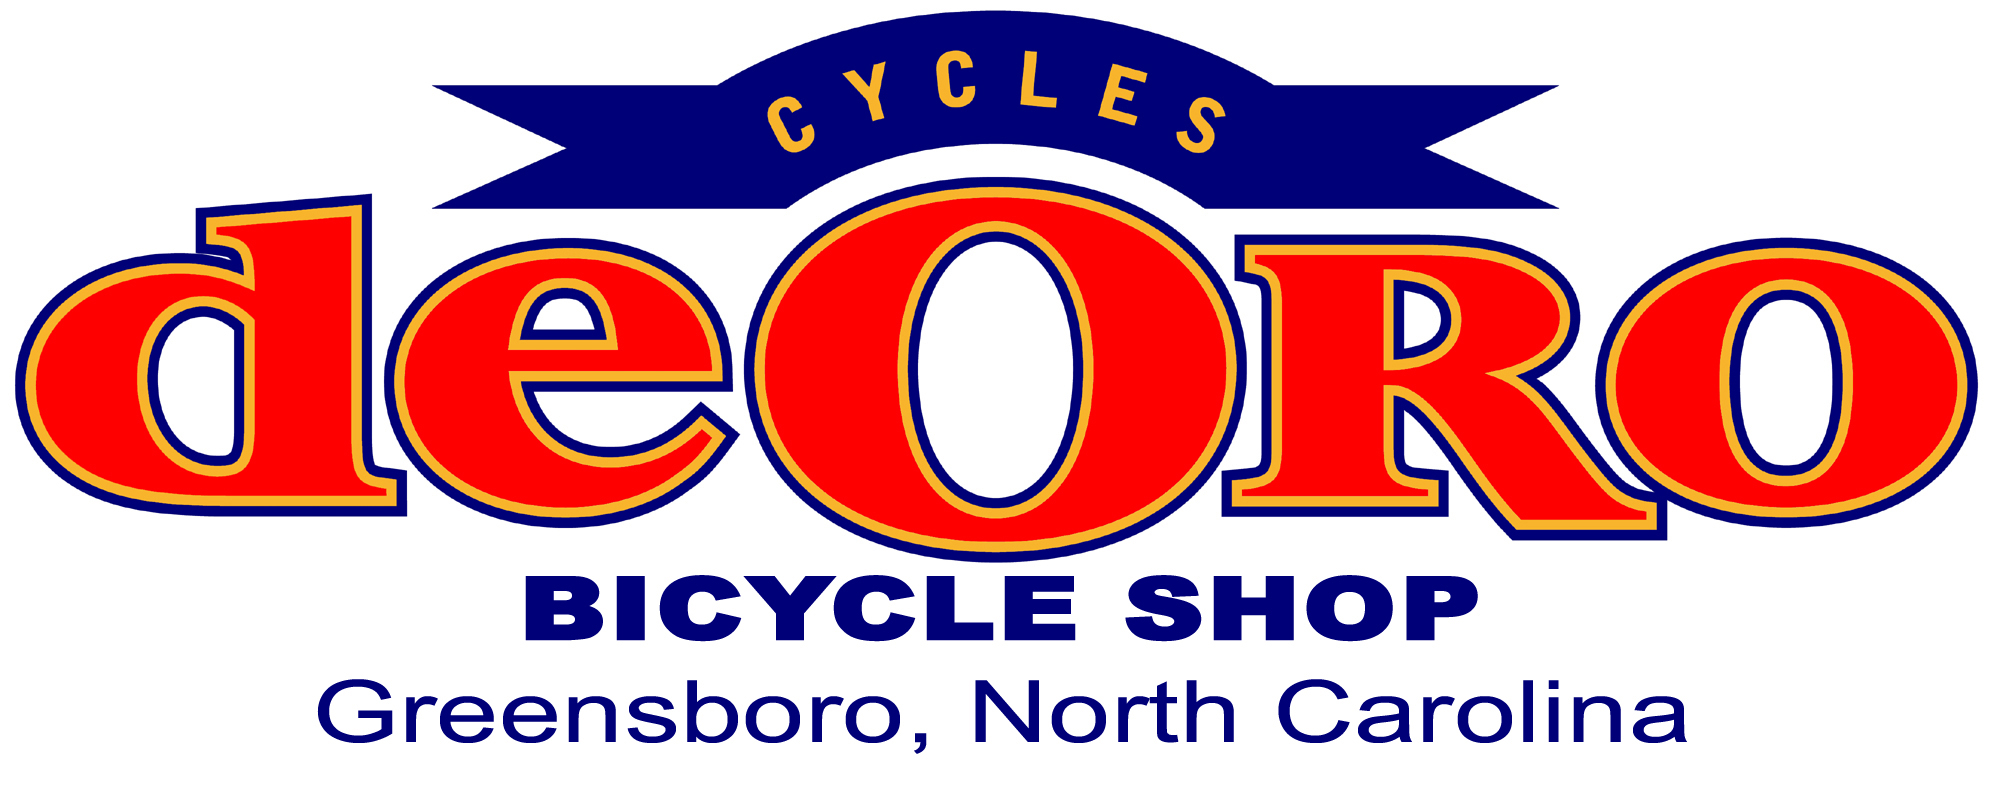 Cycles de Oro Logo.jpg